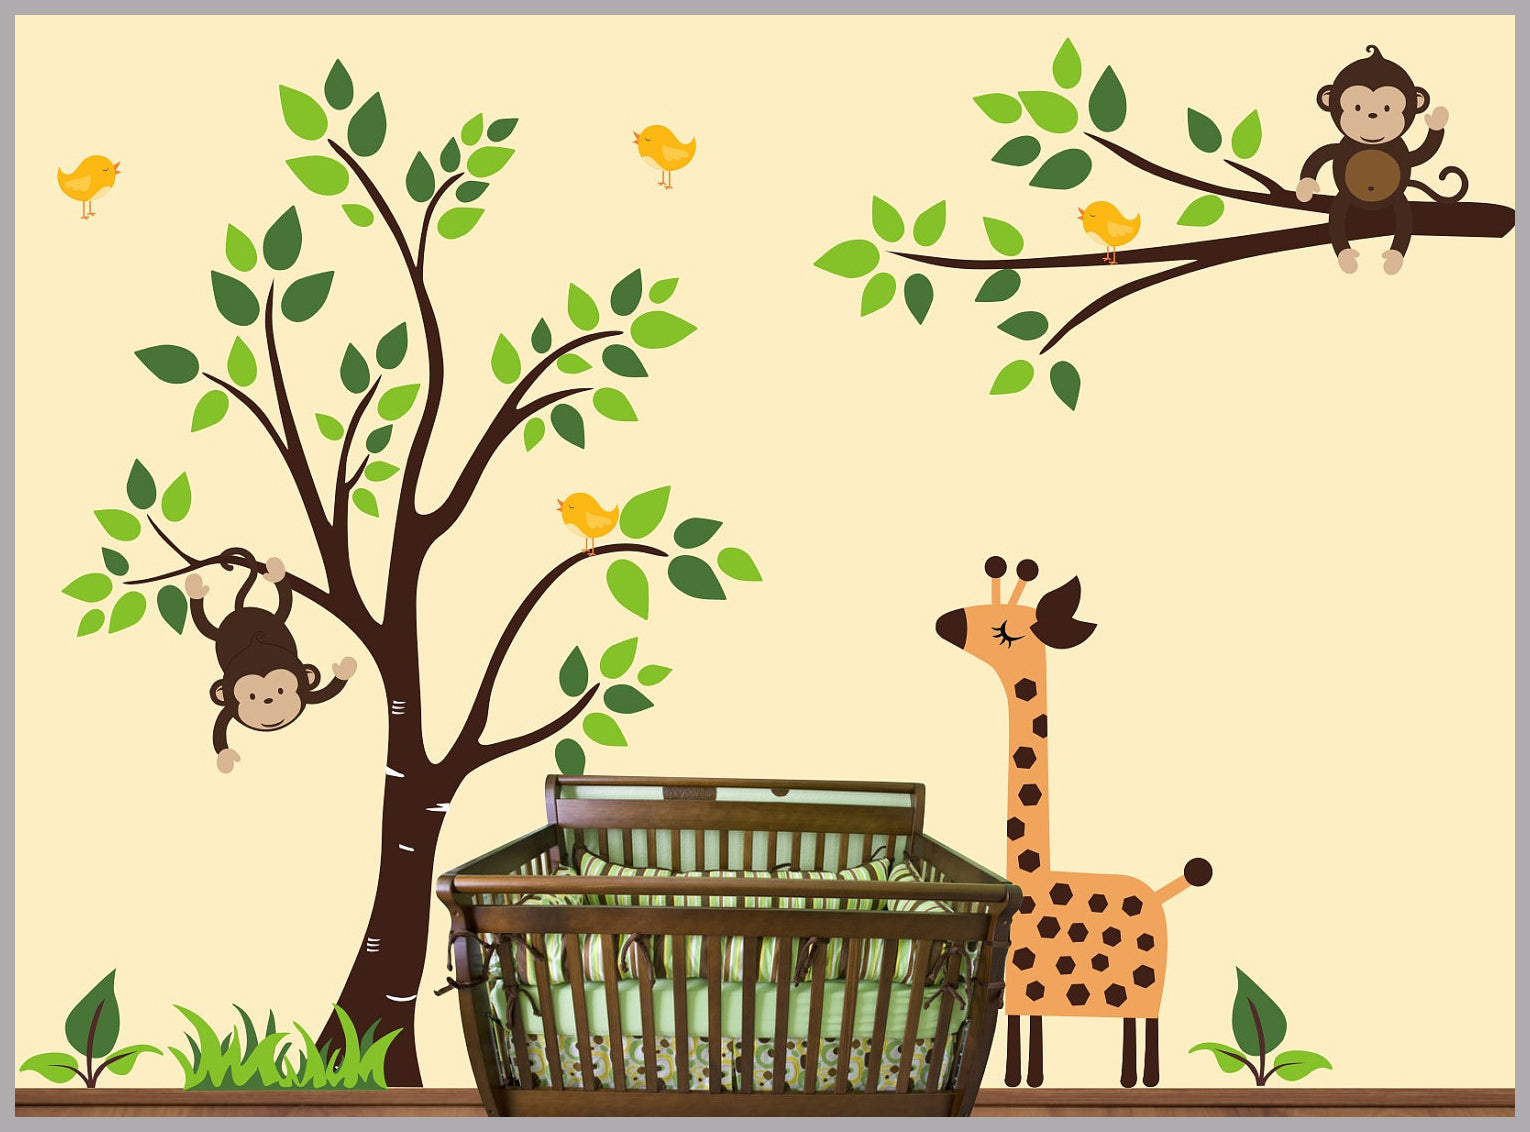 Nursery Print | Nursery Room Decor | Nursery Wall Decals | Baby Room ...